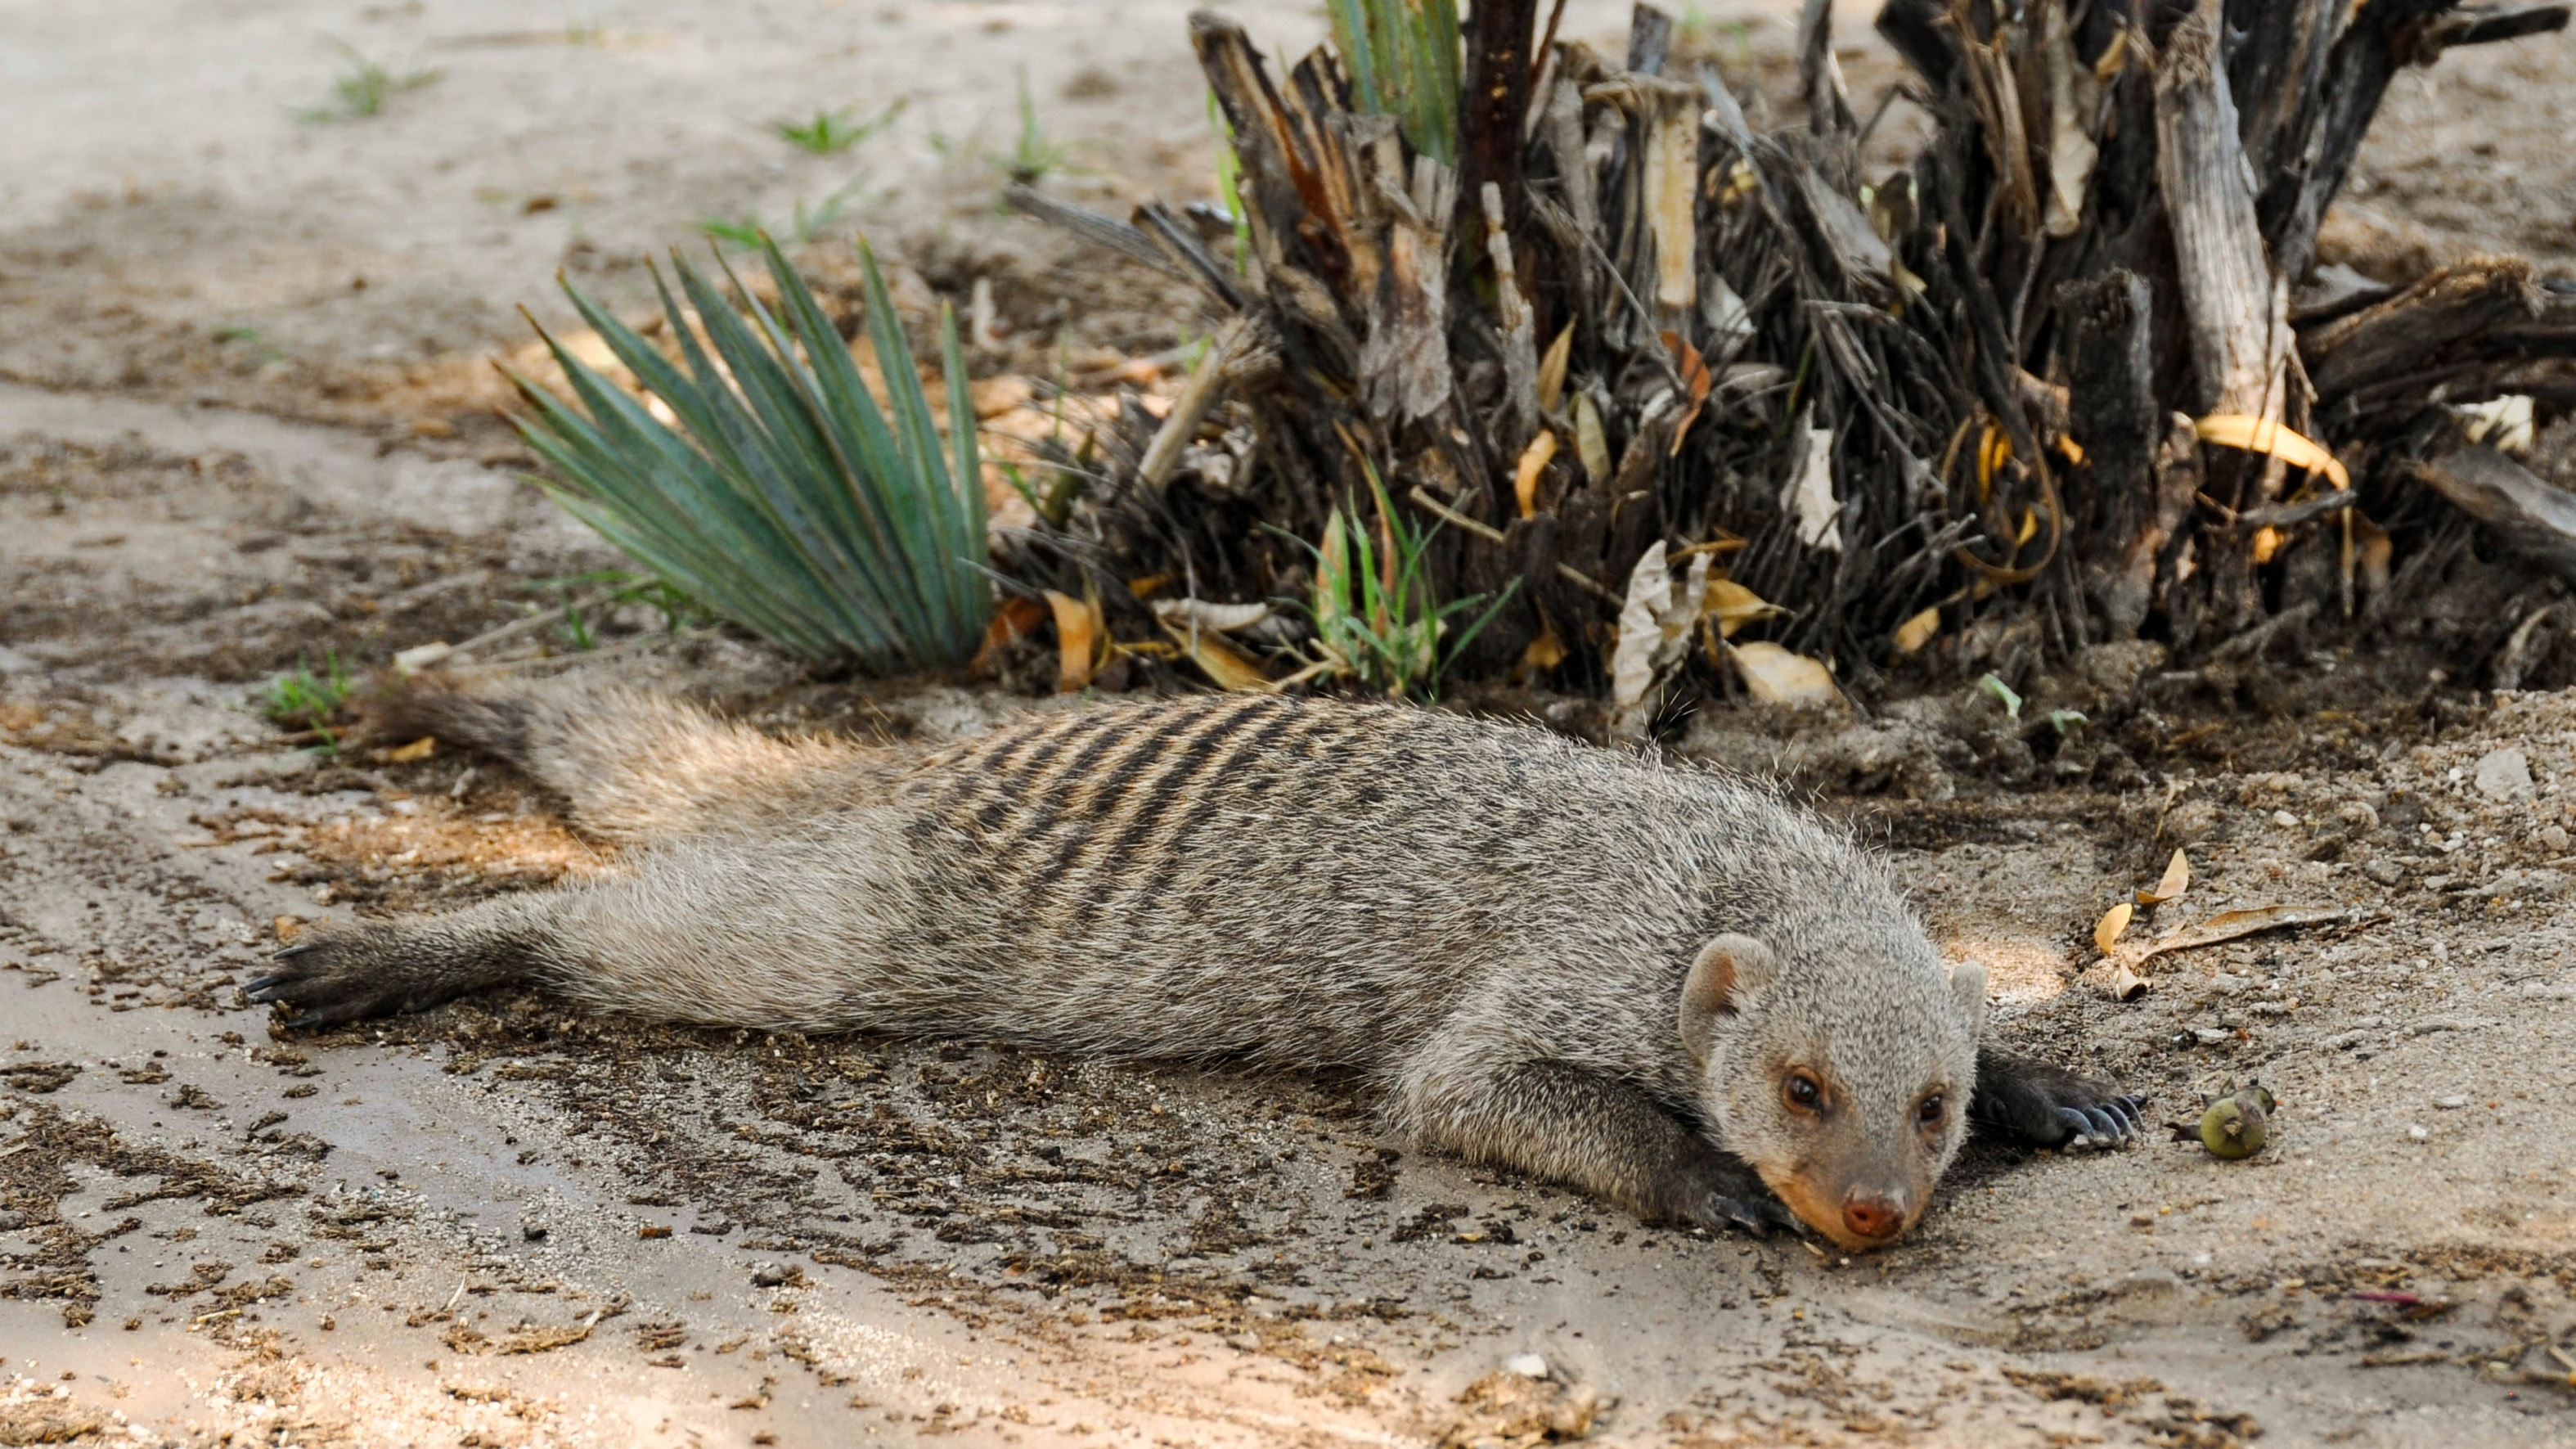 mongoose stretched out on ground in dirt in the sun